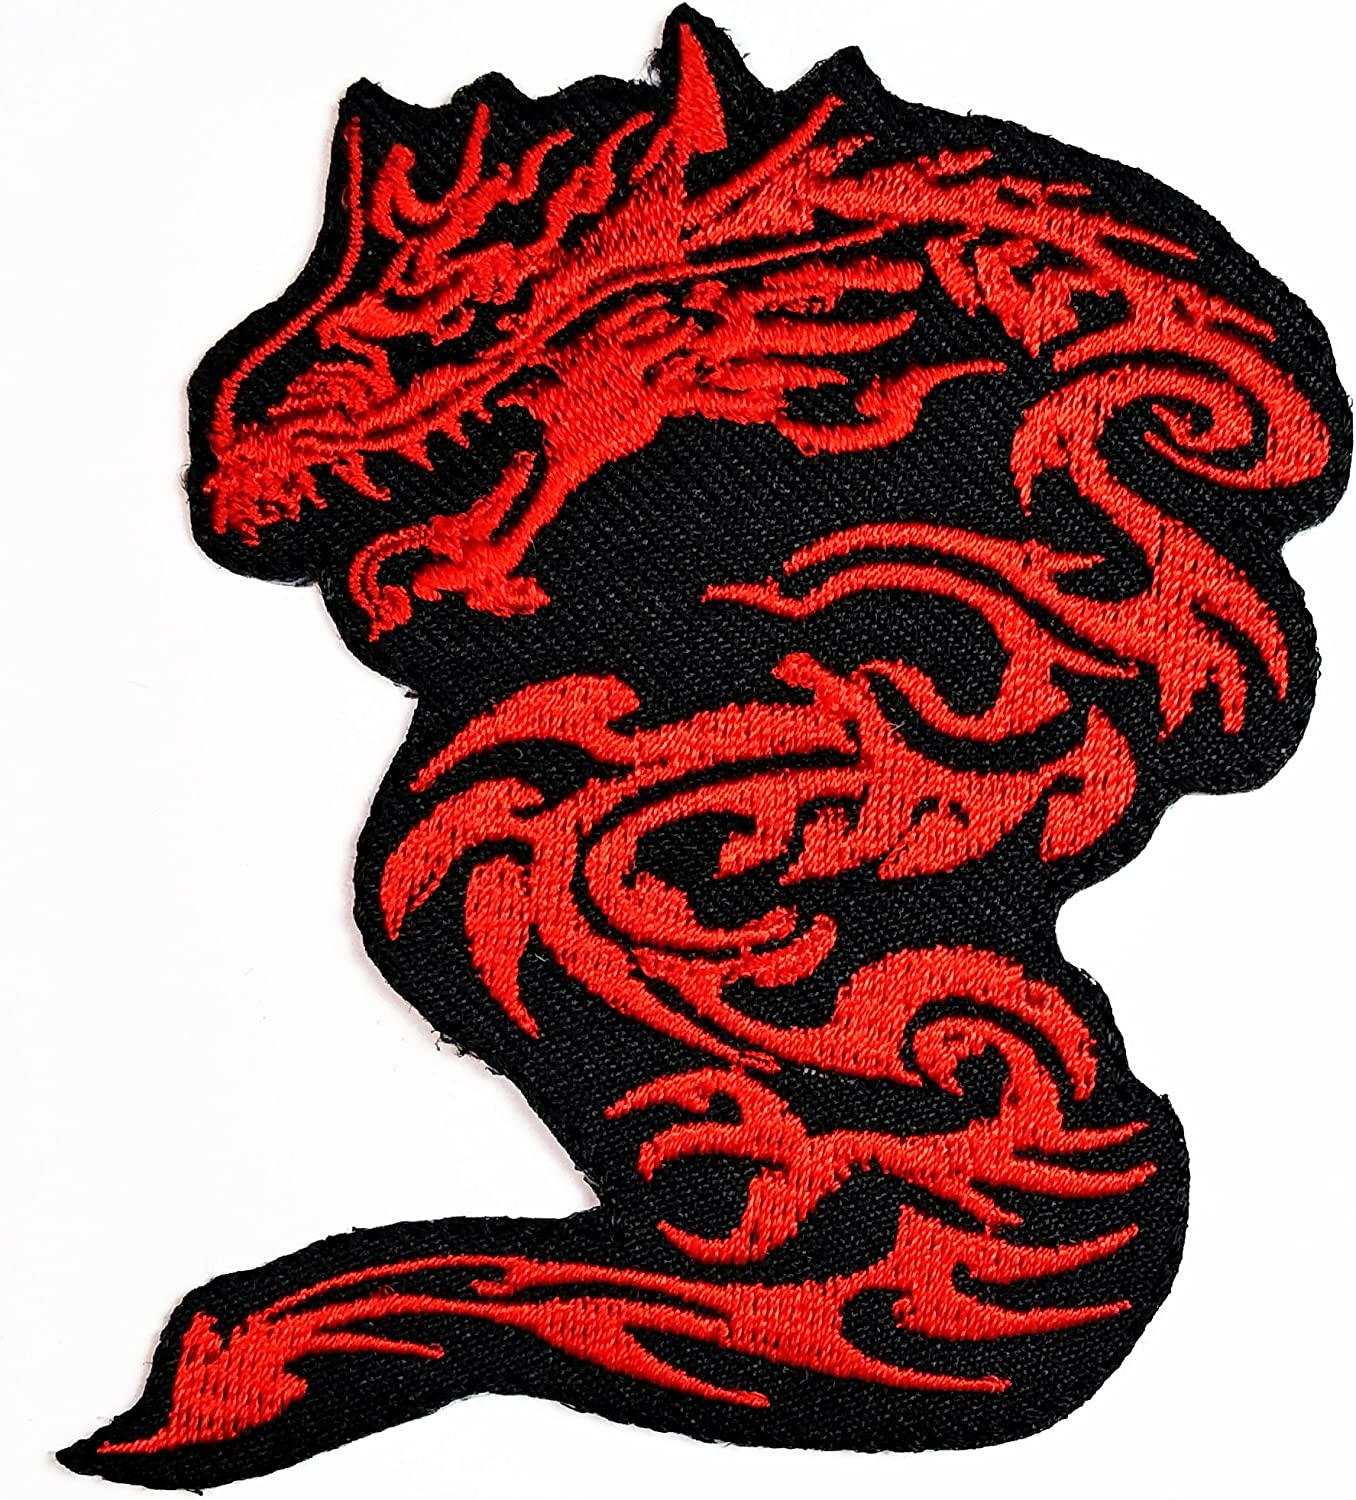 HHO Red Chinese Dragon Kung Fu Martial Arts Logo Patch Embroidered DIY Patches, Cute Applique Sew Iron on Kids Craft Patch for Bags Jackets Jeans Clothes